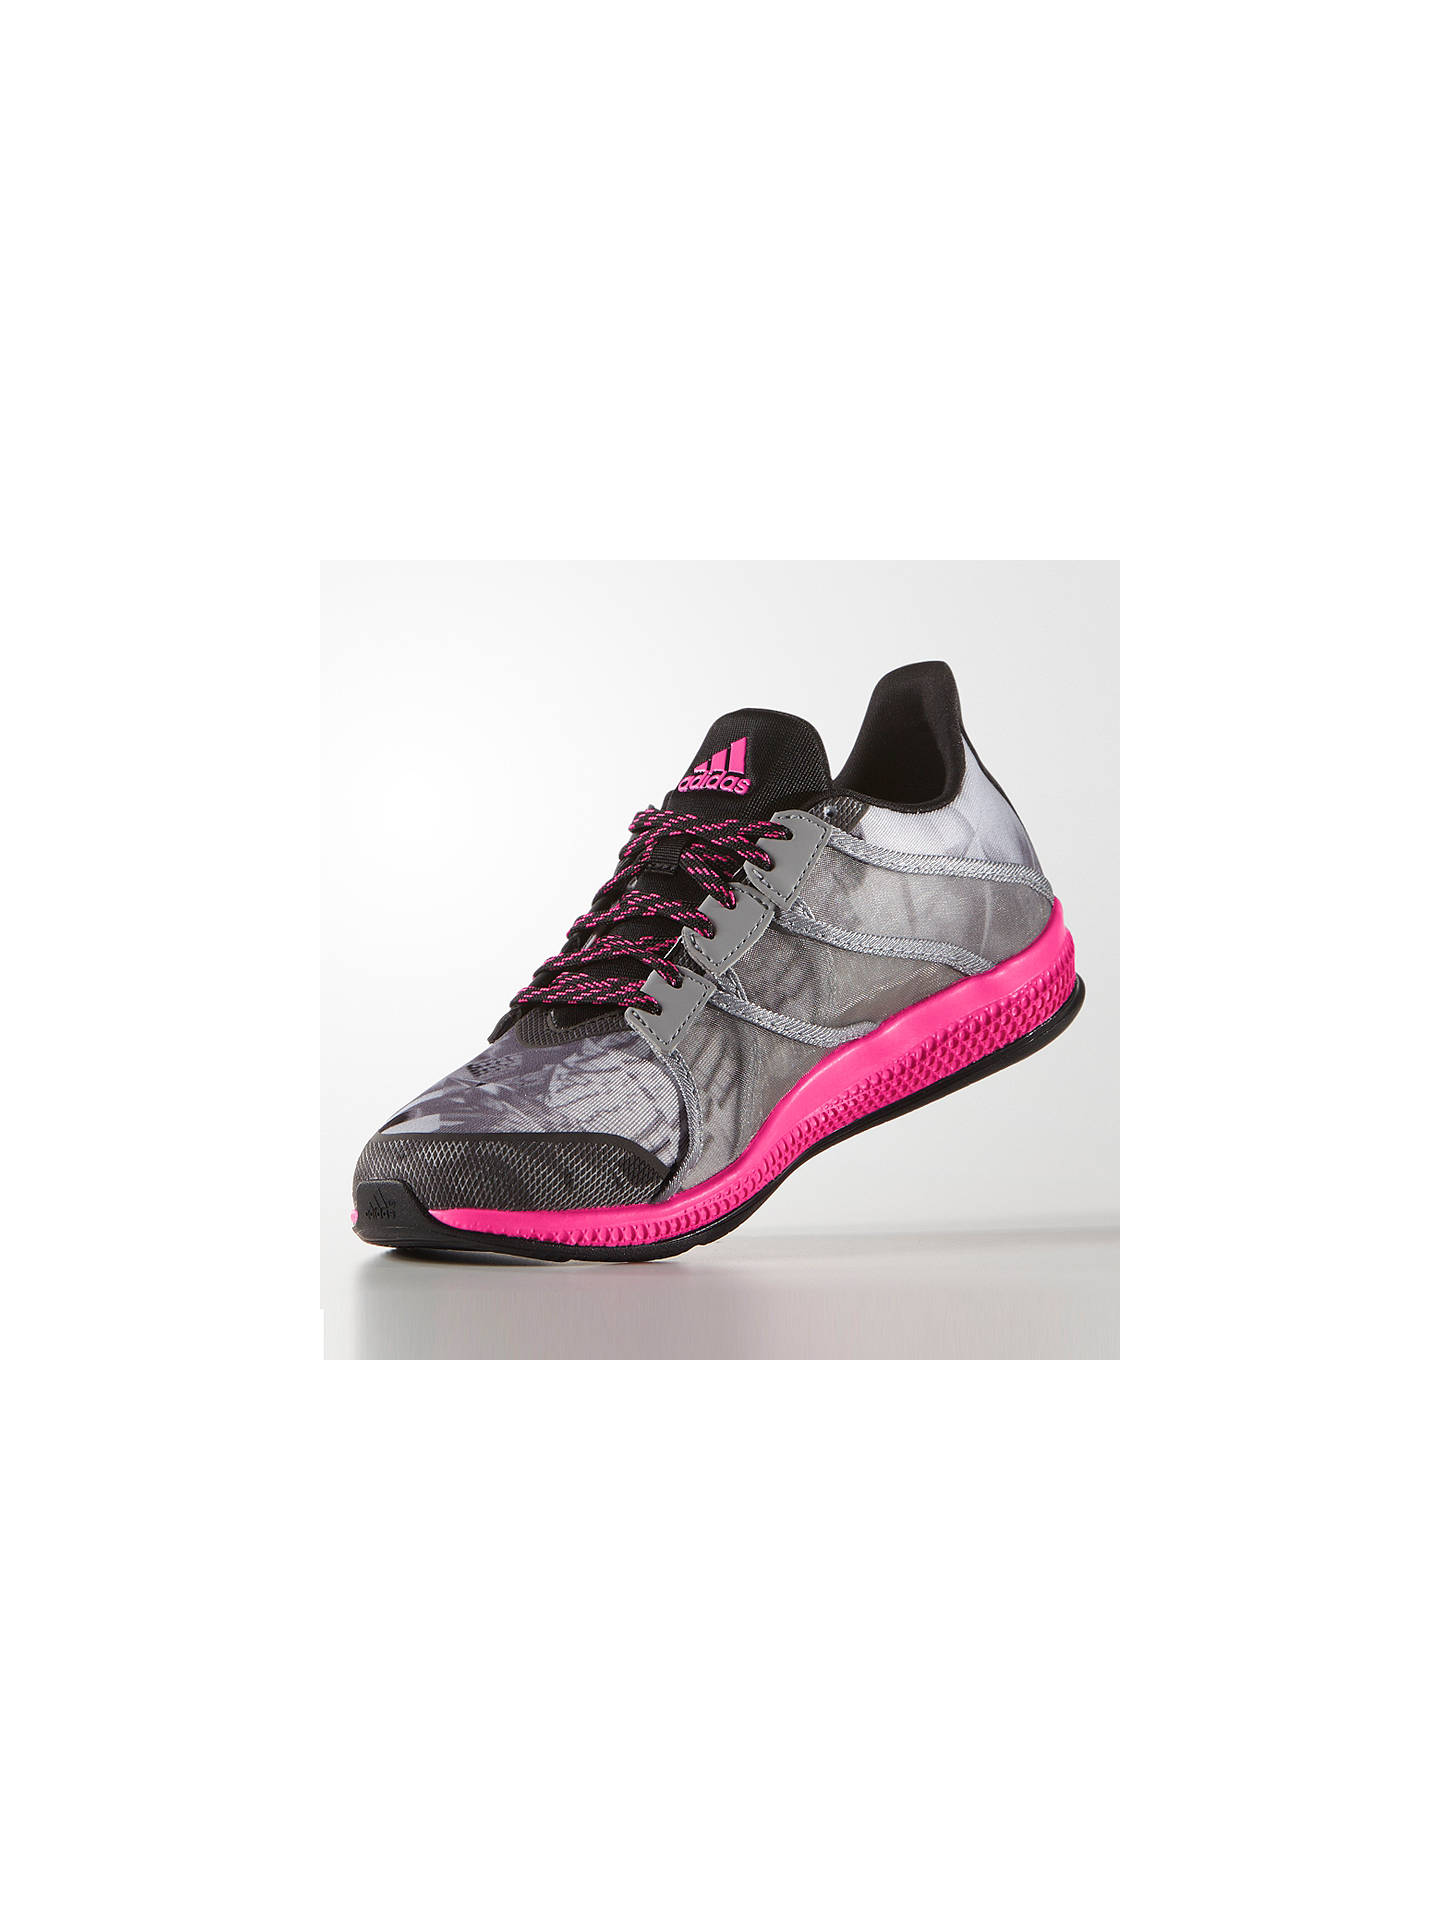 50fece3f3 ... Buy Adidas Gymbreaker Bounce Women s Cross Trainers